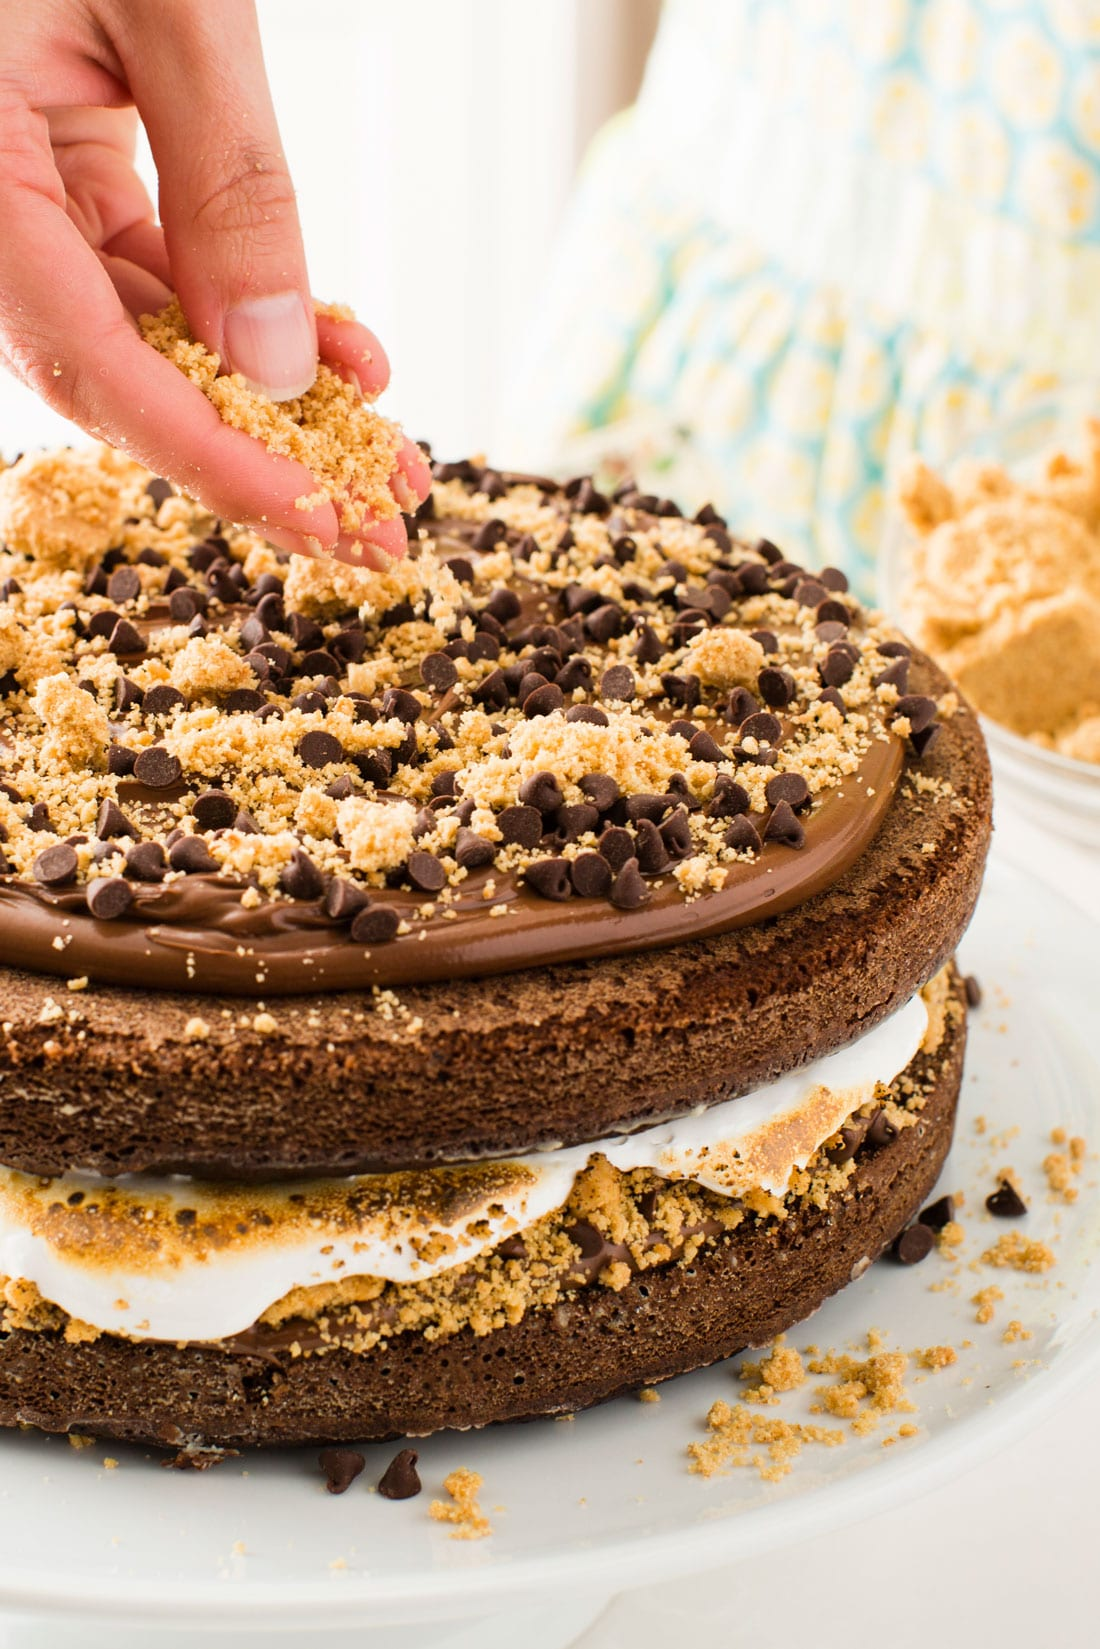 Top of Miss Jones Baking Co's Salted Nutella S'more Cake and a hand pouring graham cracker crumbs on top